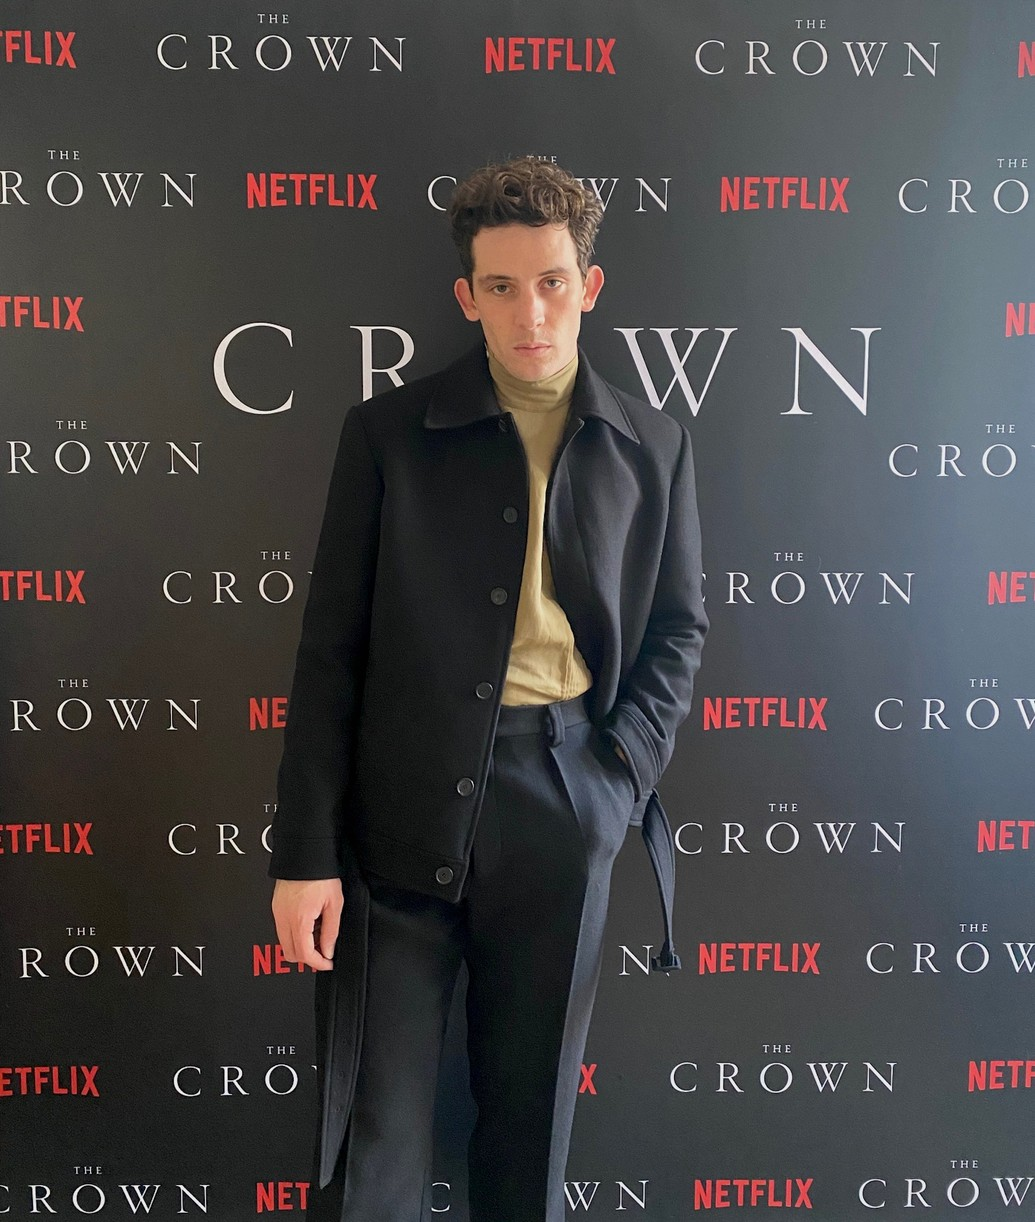 crown cast took own premiere pics at home lockdown 044500061